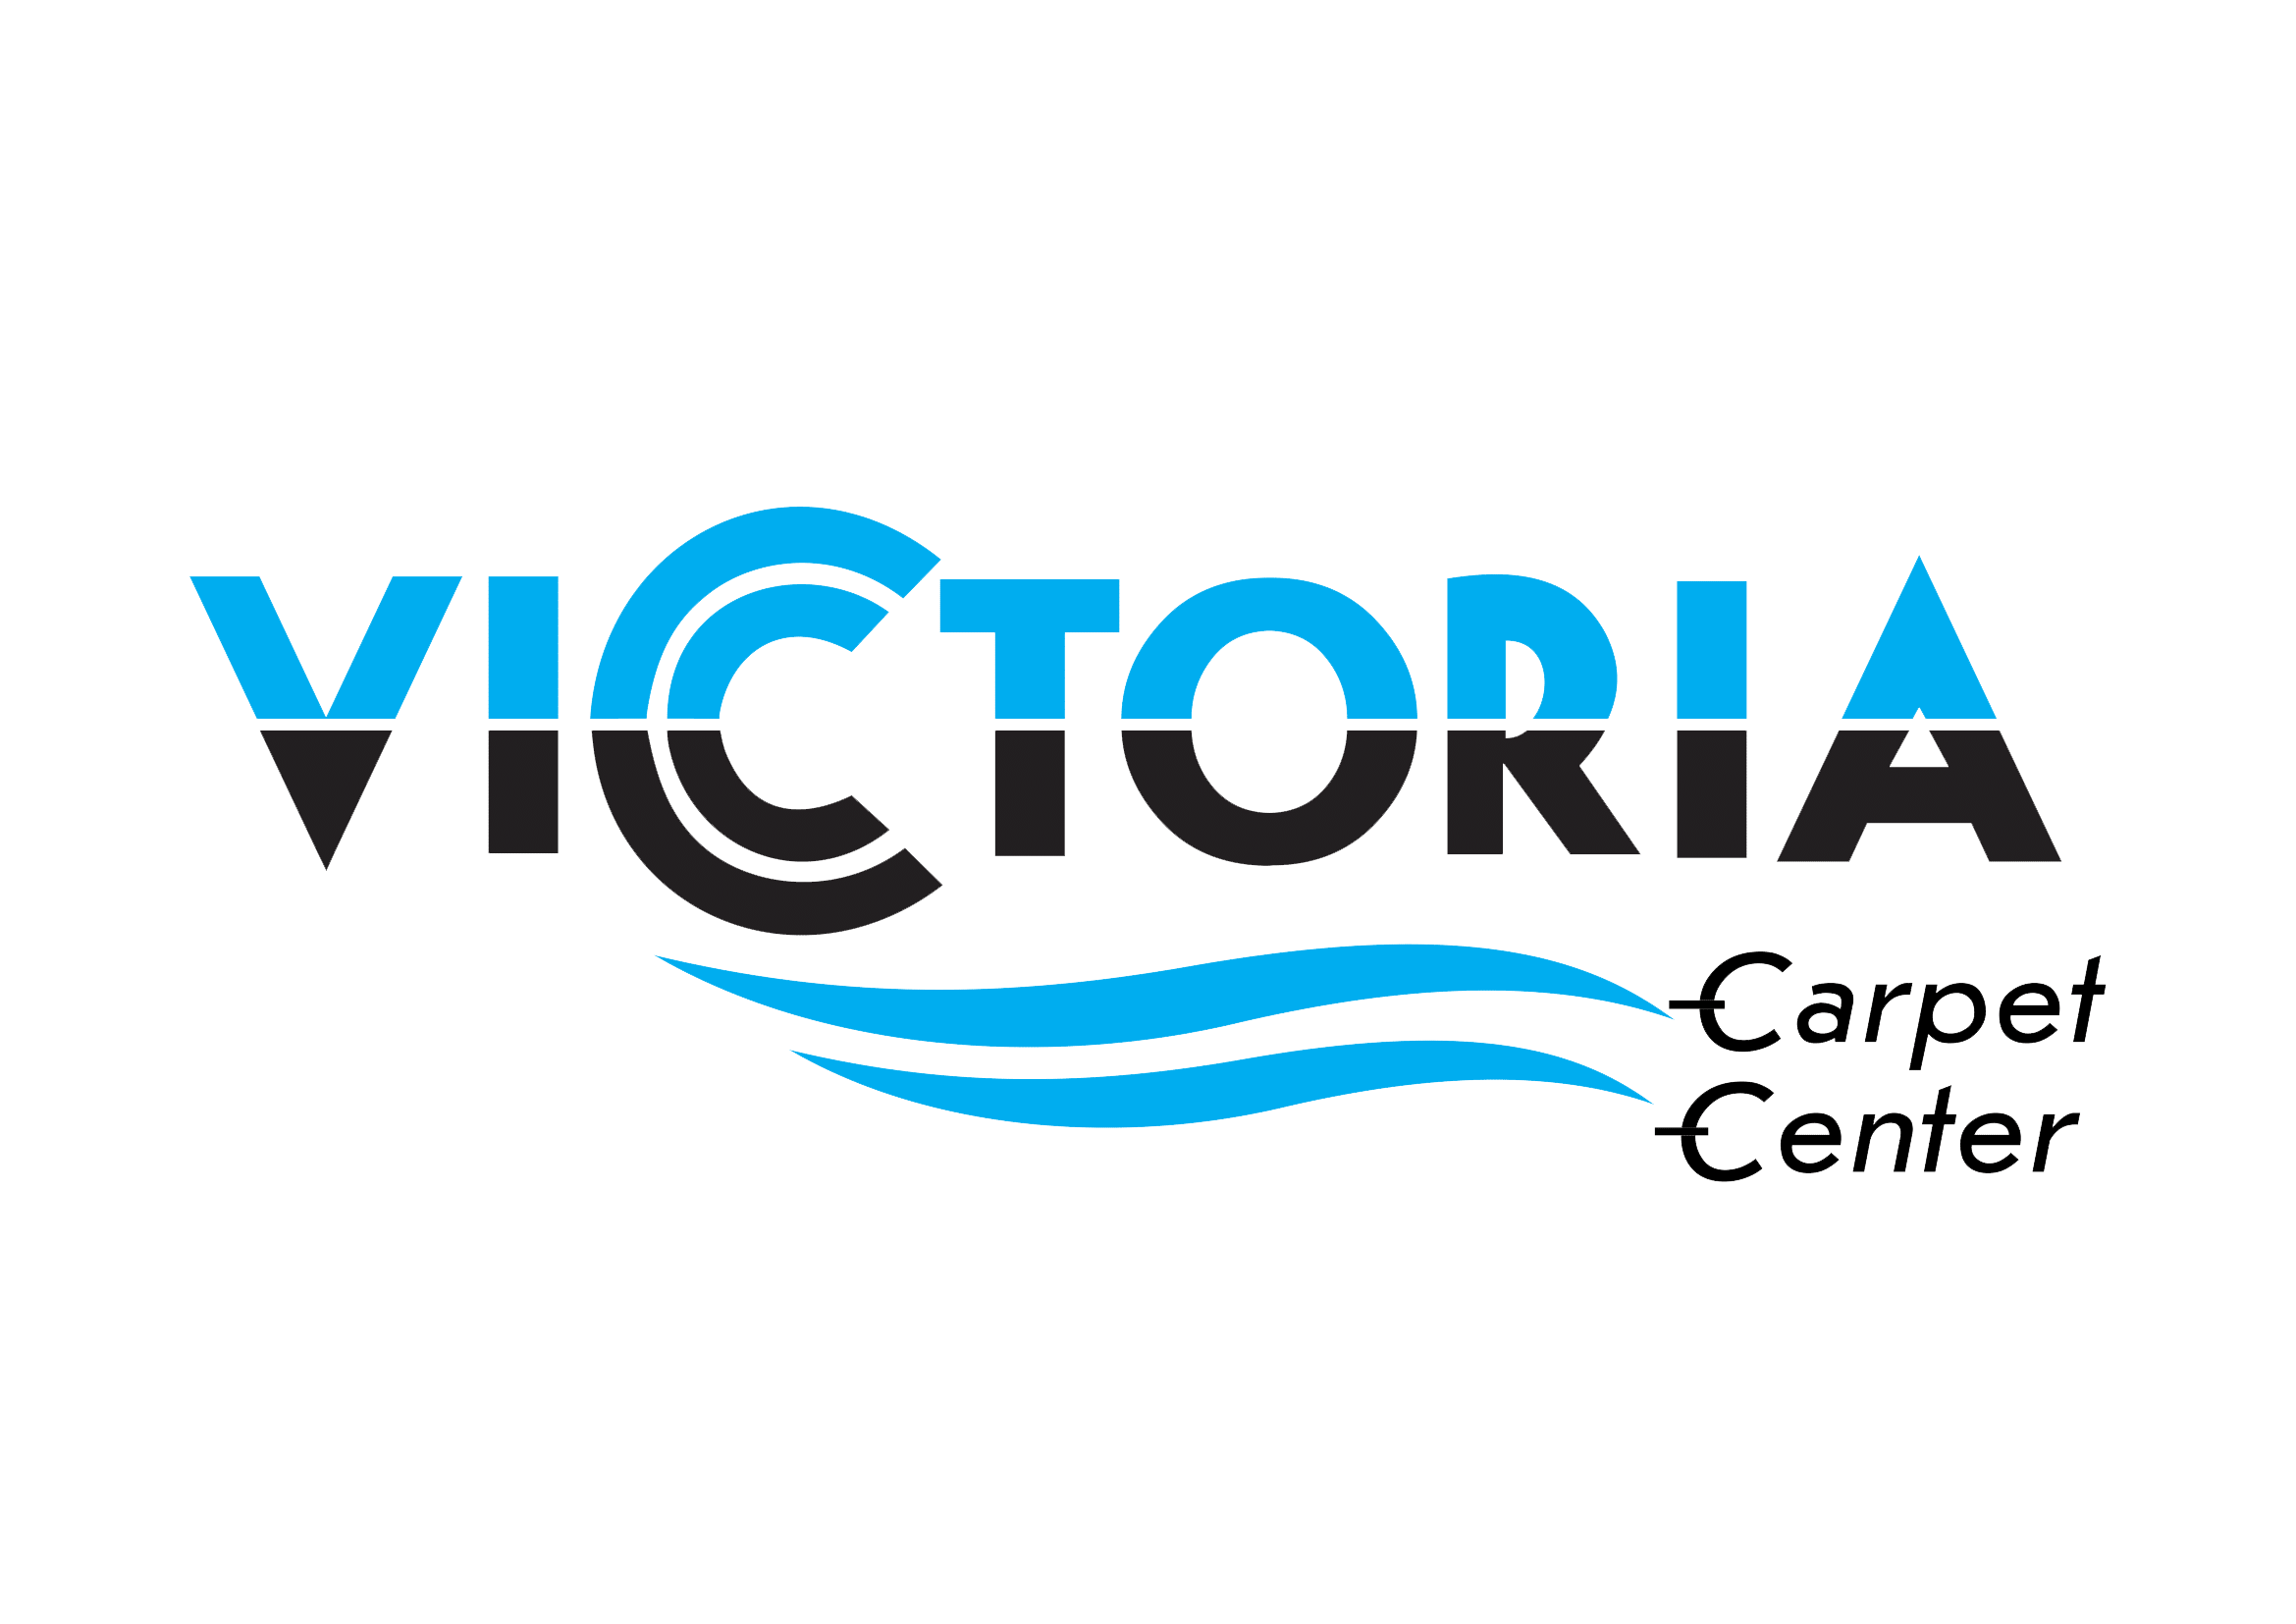 Victoria Carpet Center